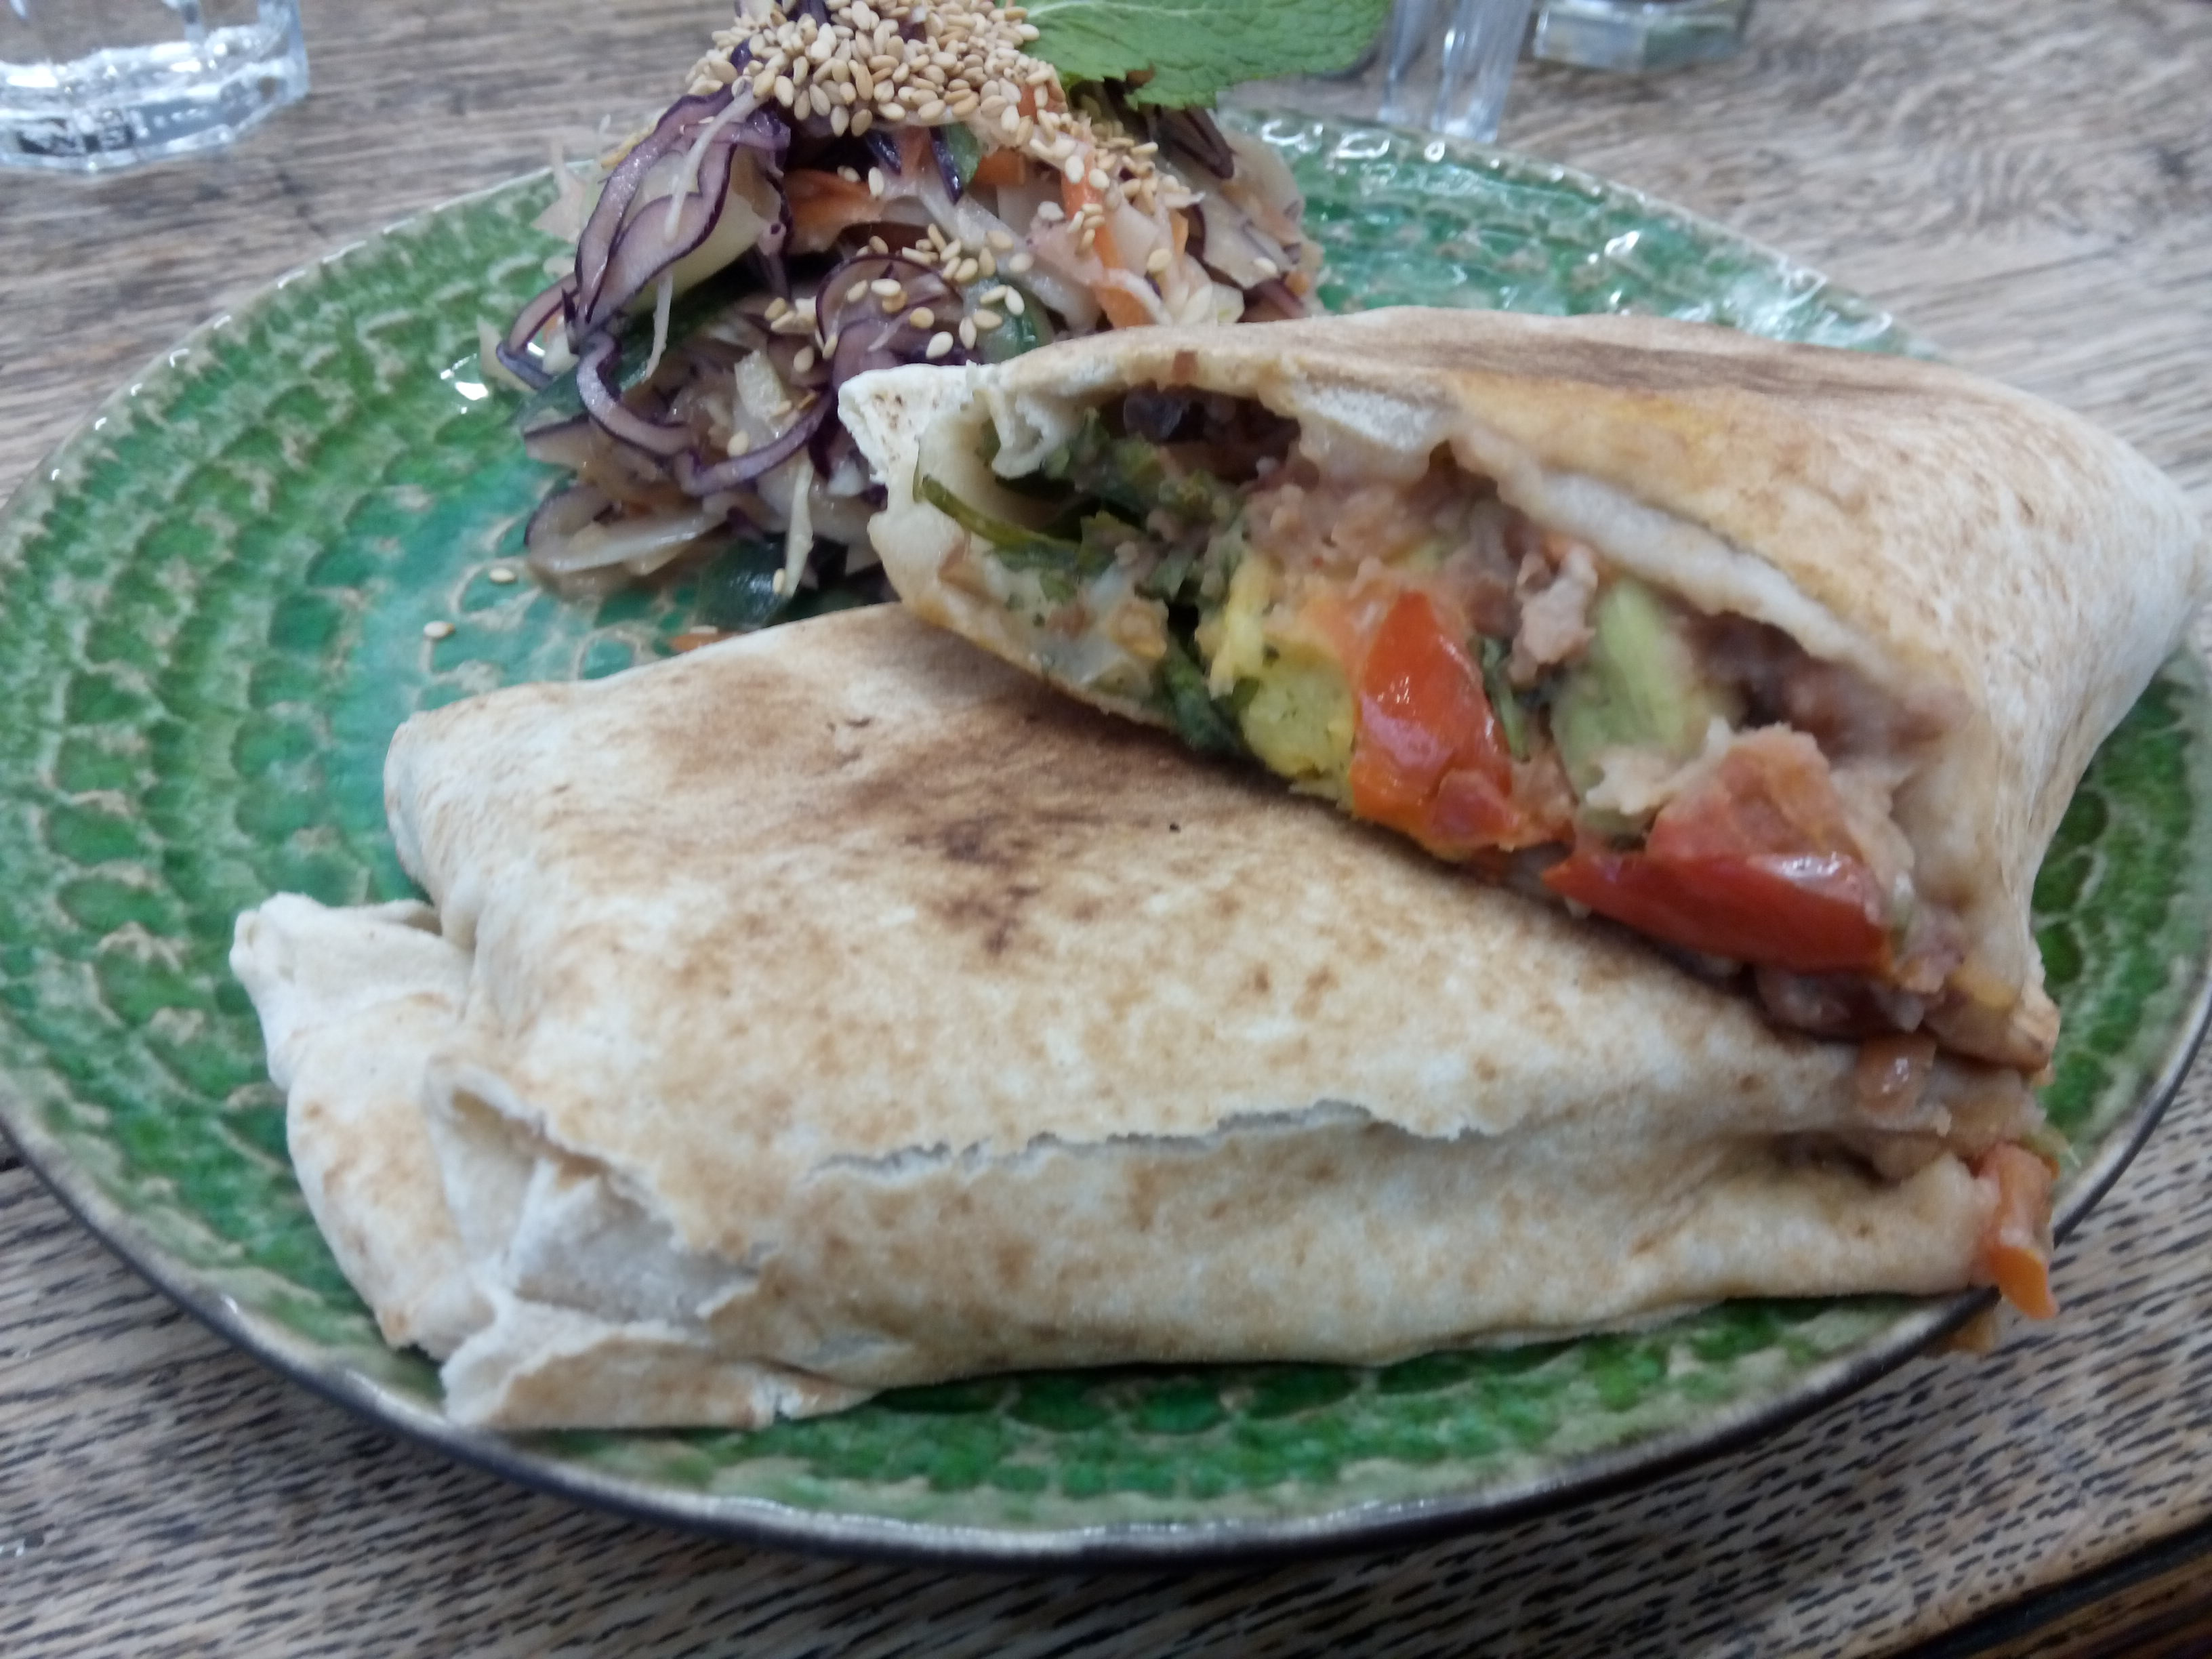 A wrap stuffed with filling on a plate with salad in the background